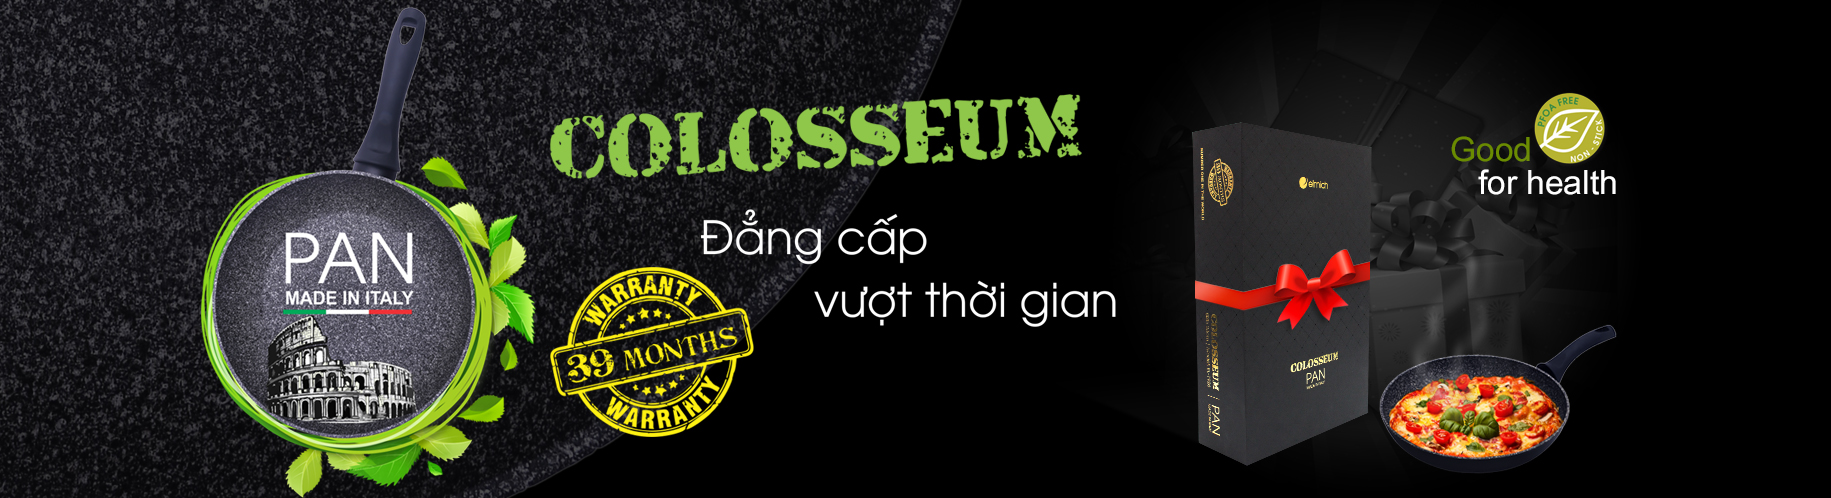 Banner chảo Colosseum